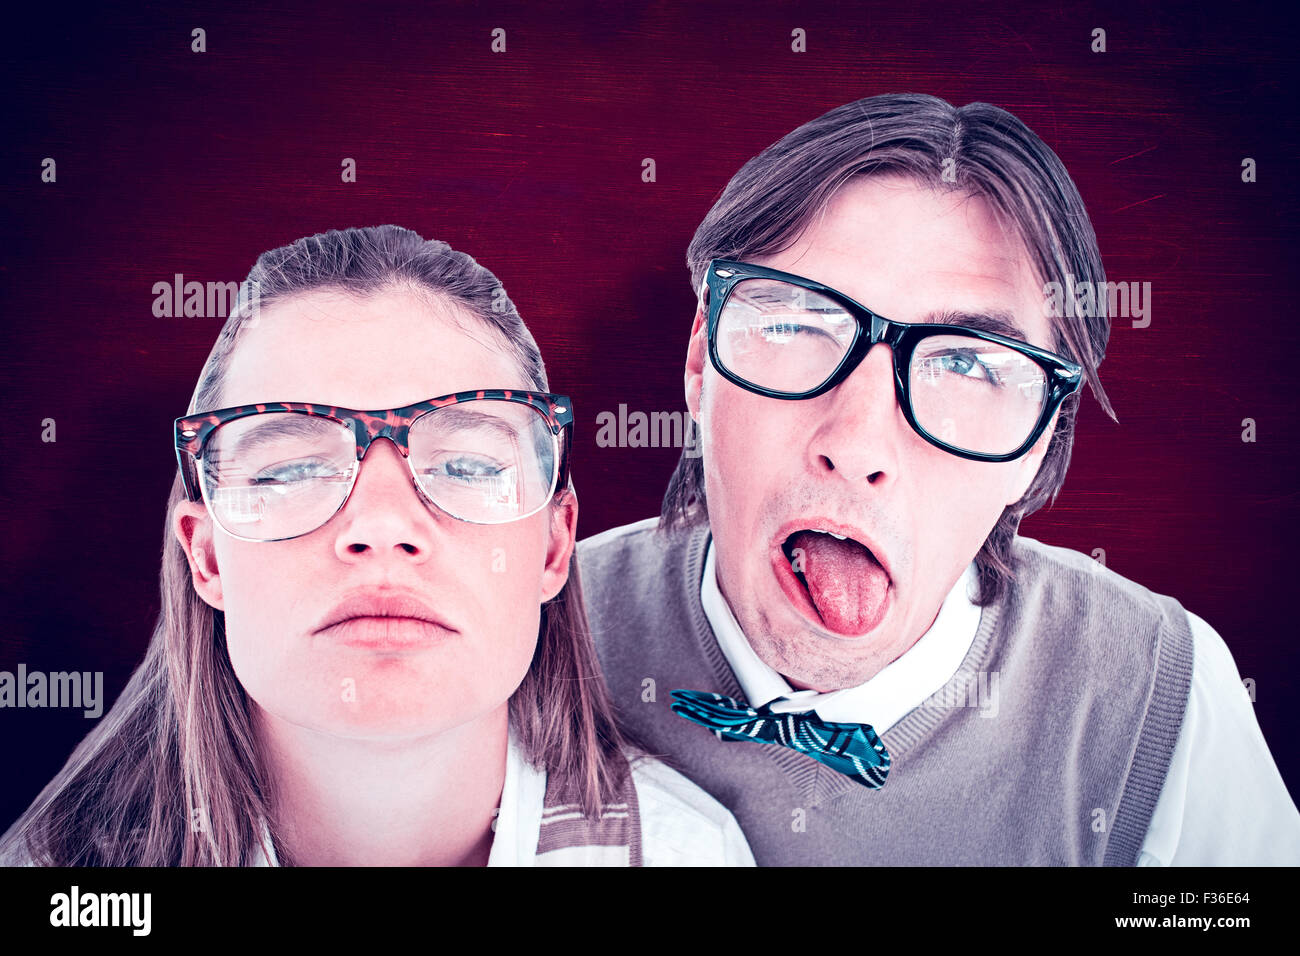 Composite image of funny geeky hipsters grimacing - Stock Image